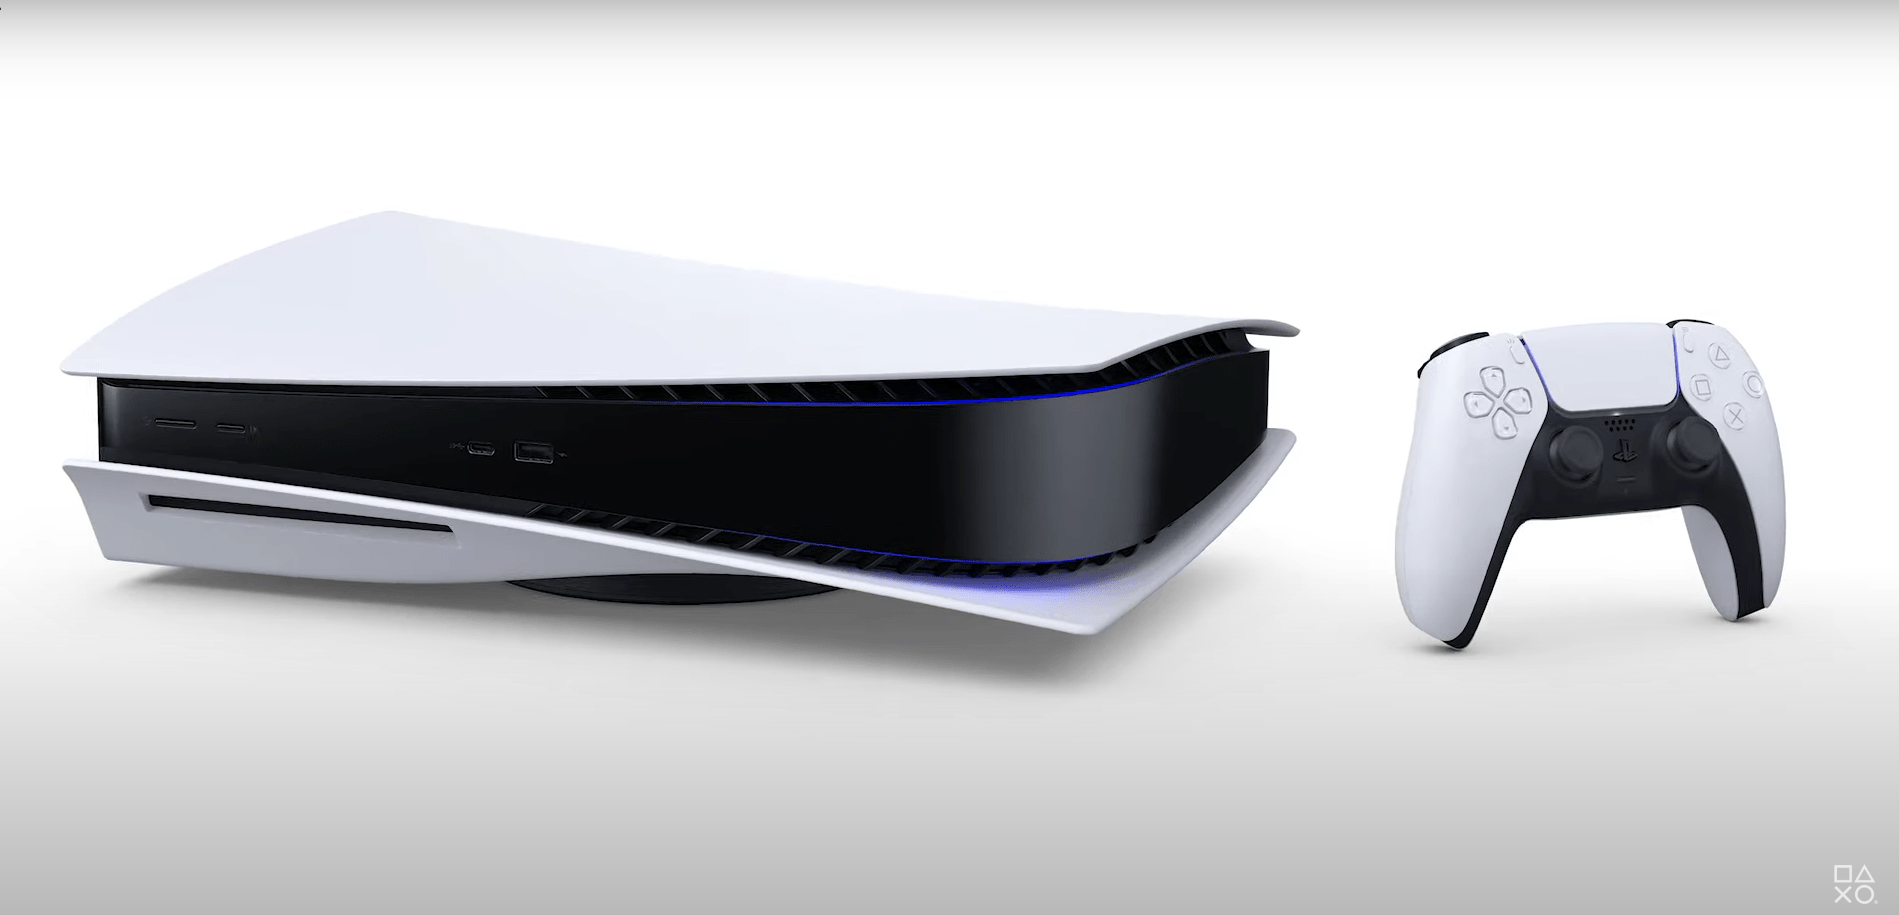 https://images.frandroid.com/wp-content/uploads/2020/06/ps5-sony.png